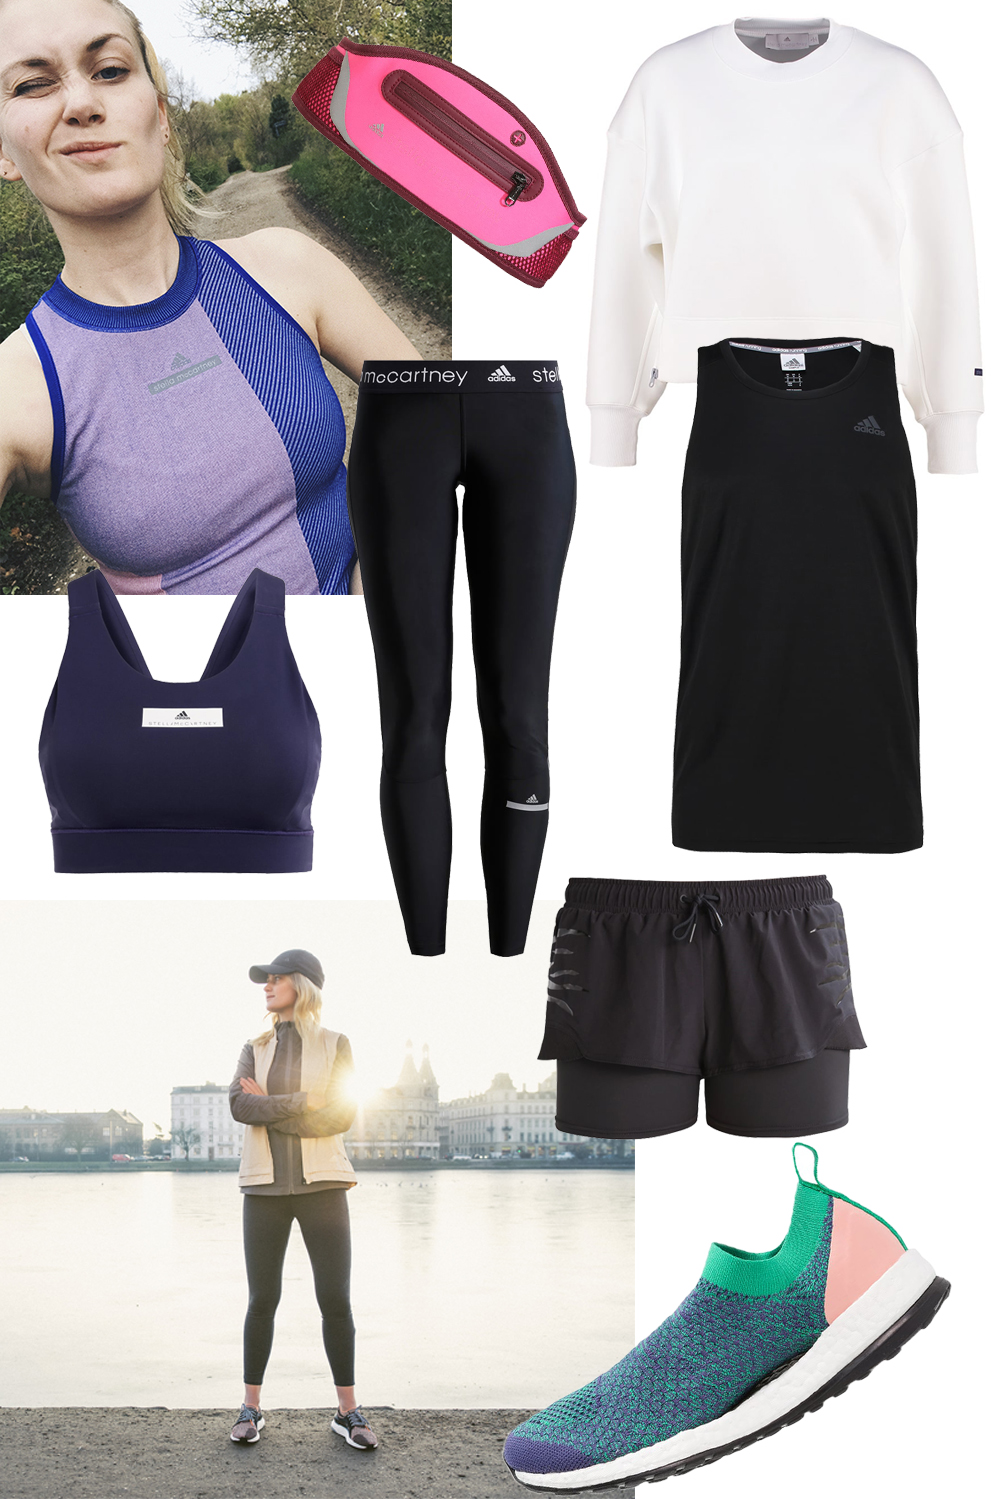 newworkoutclothes